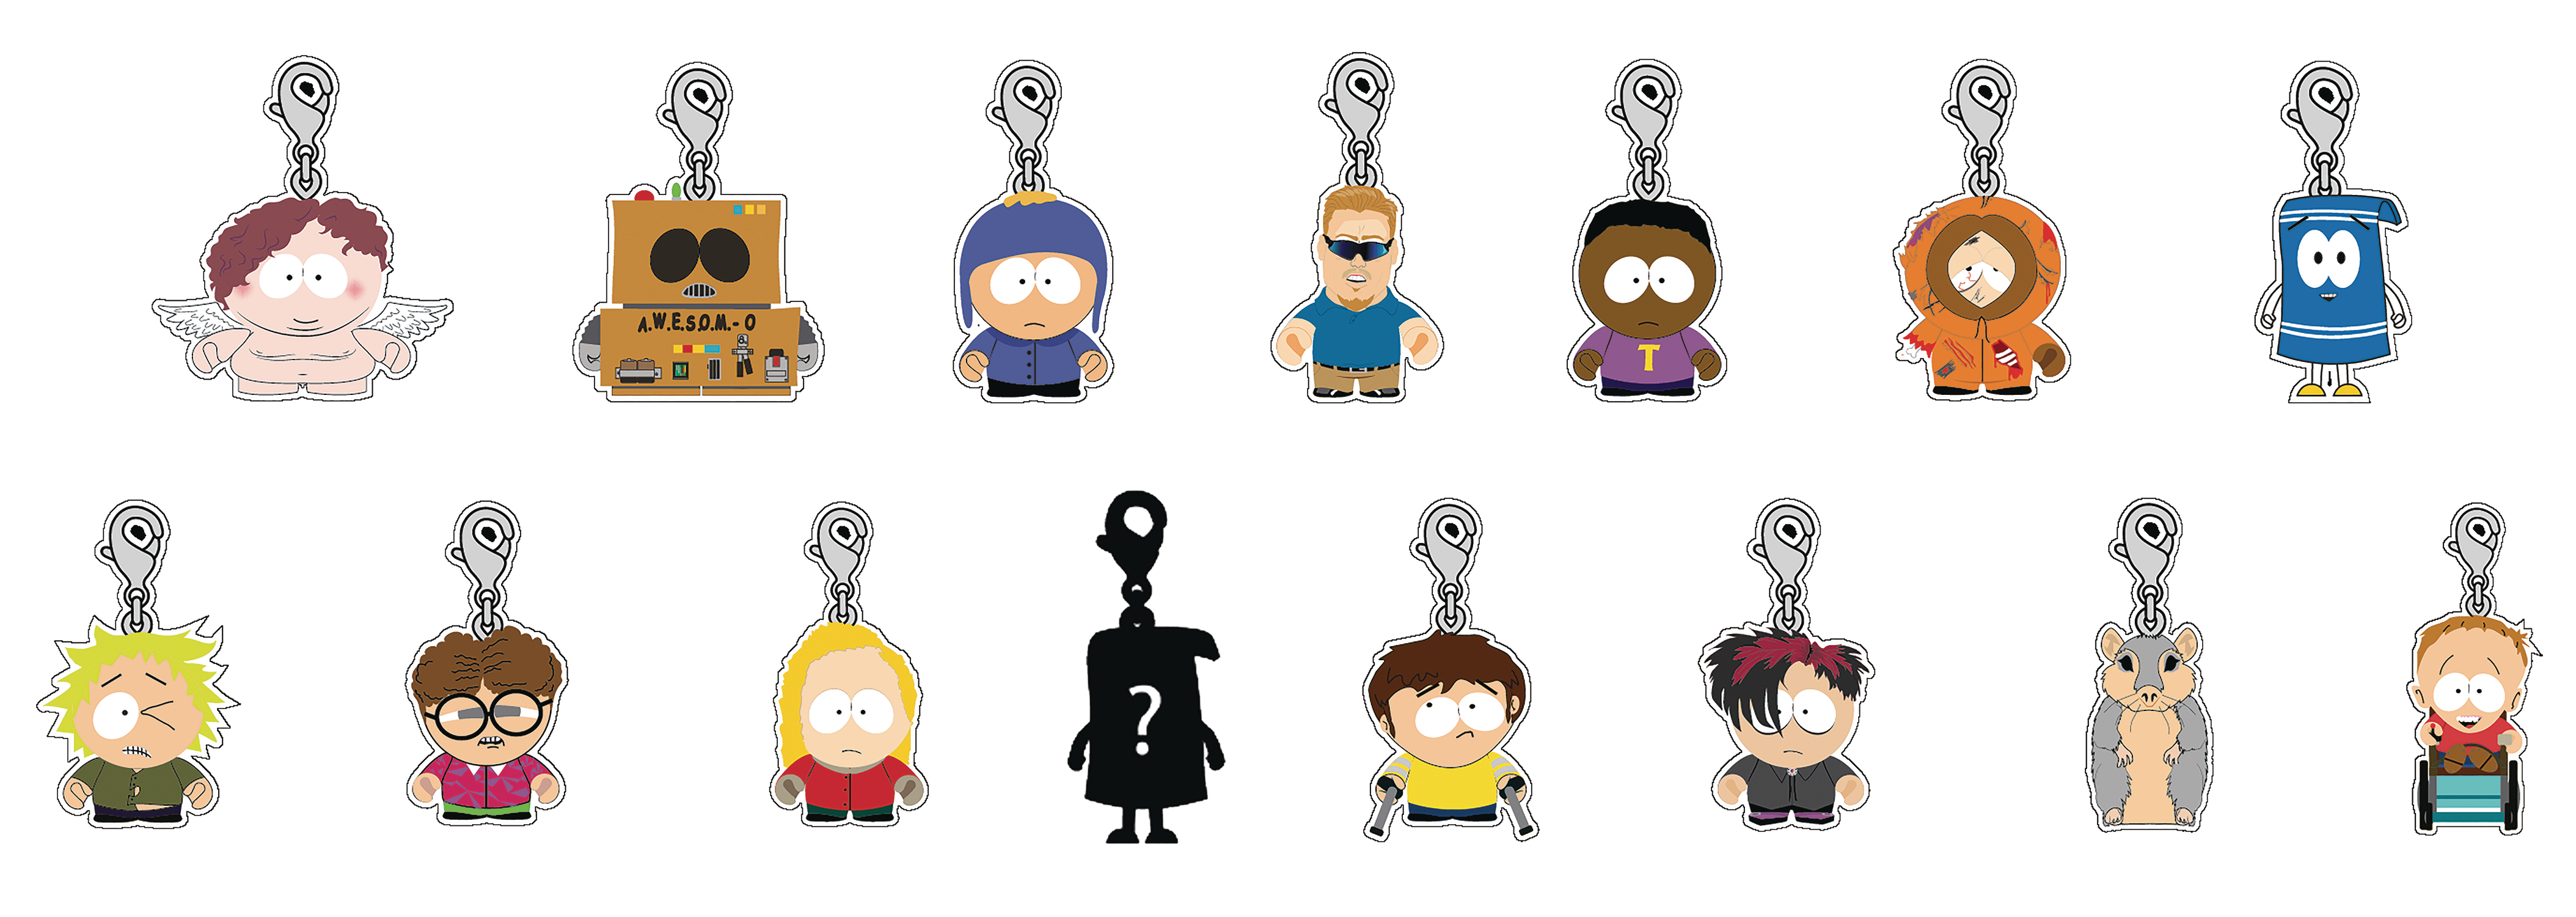 Jimmy Keychain Series 2 by Kidrobot South Park Zipper Pull